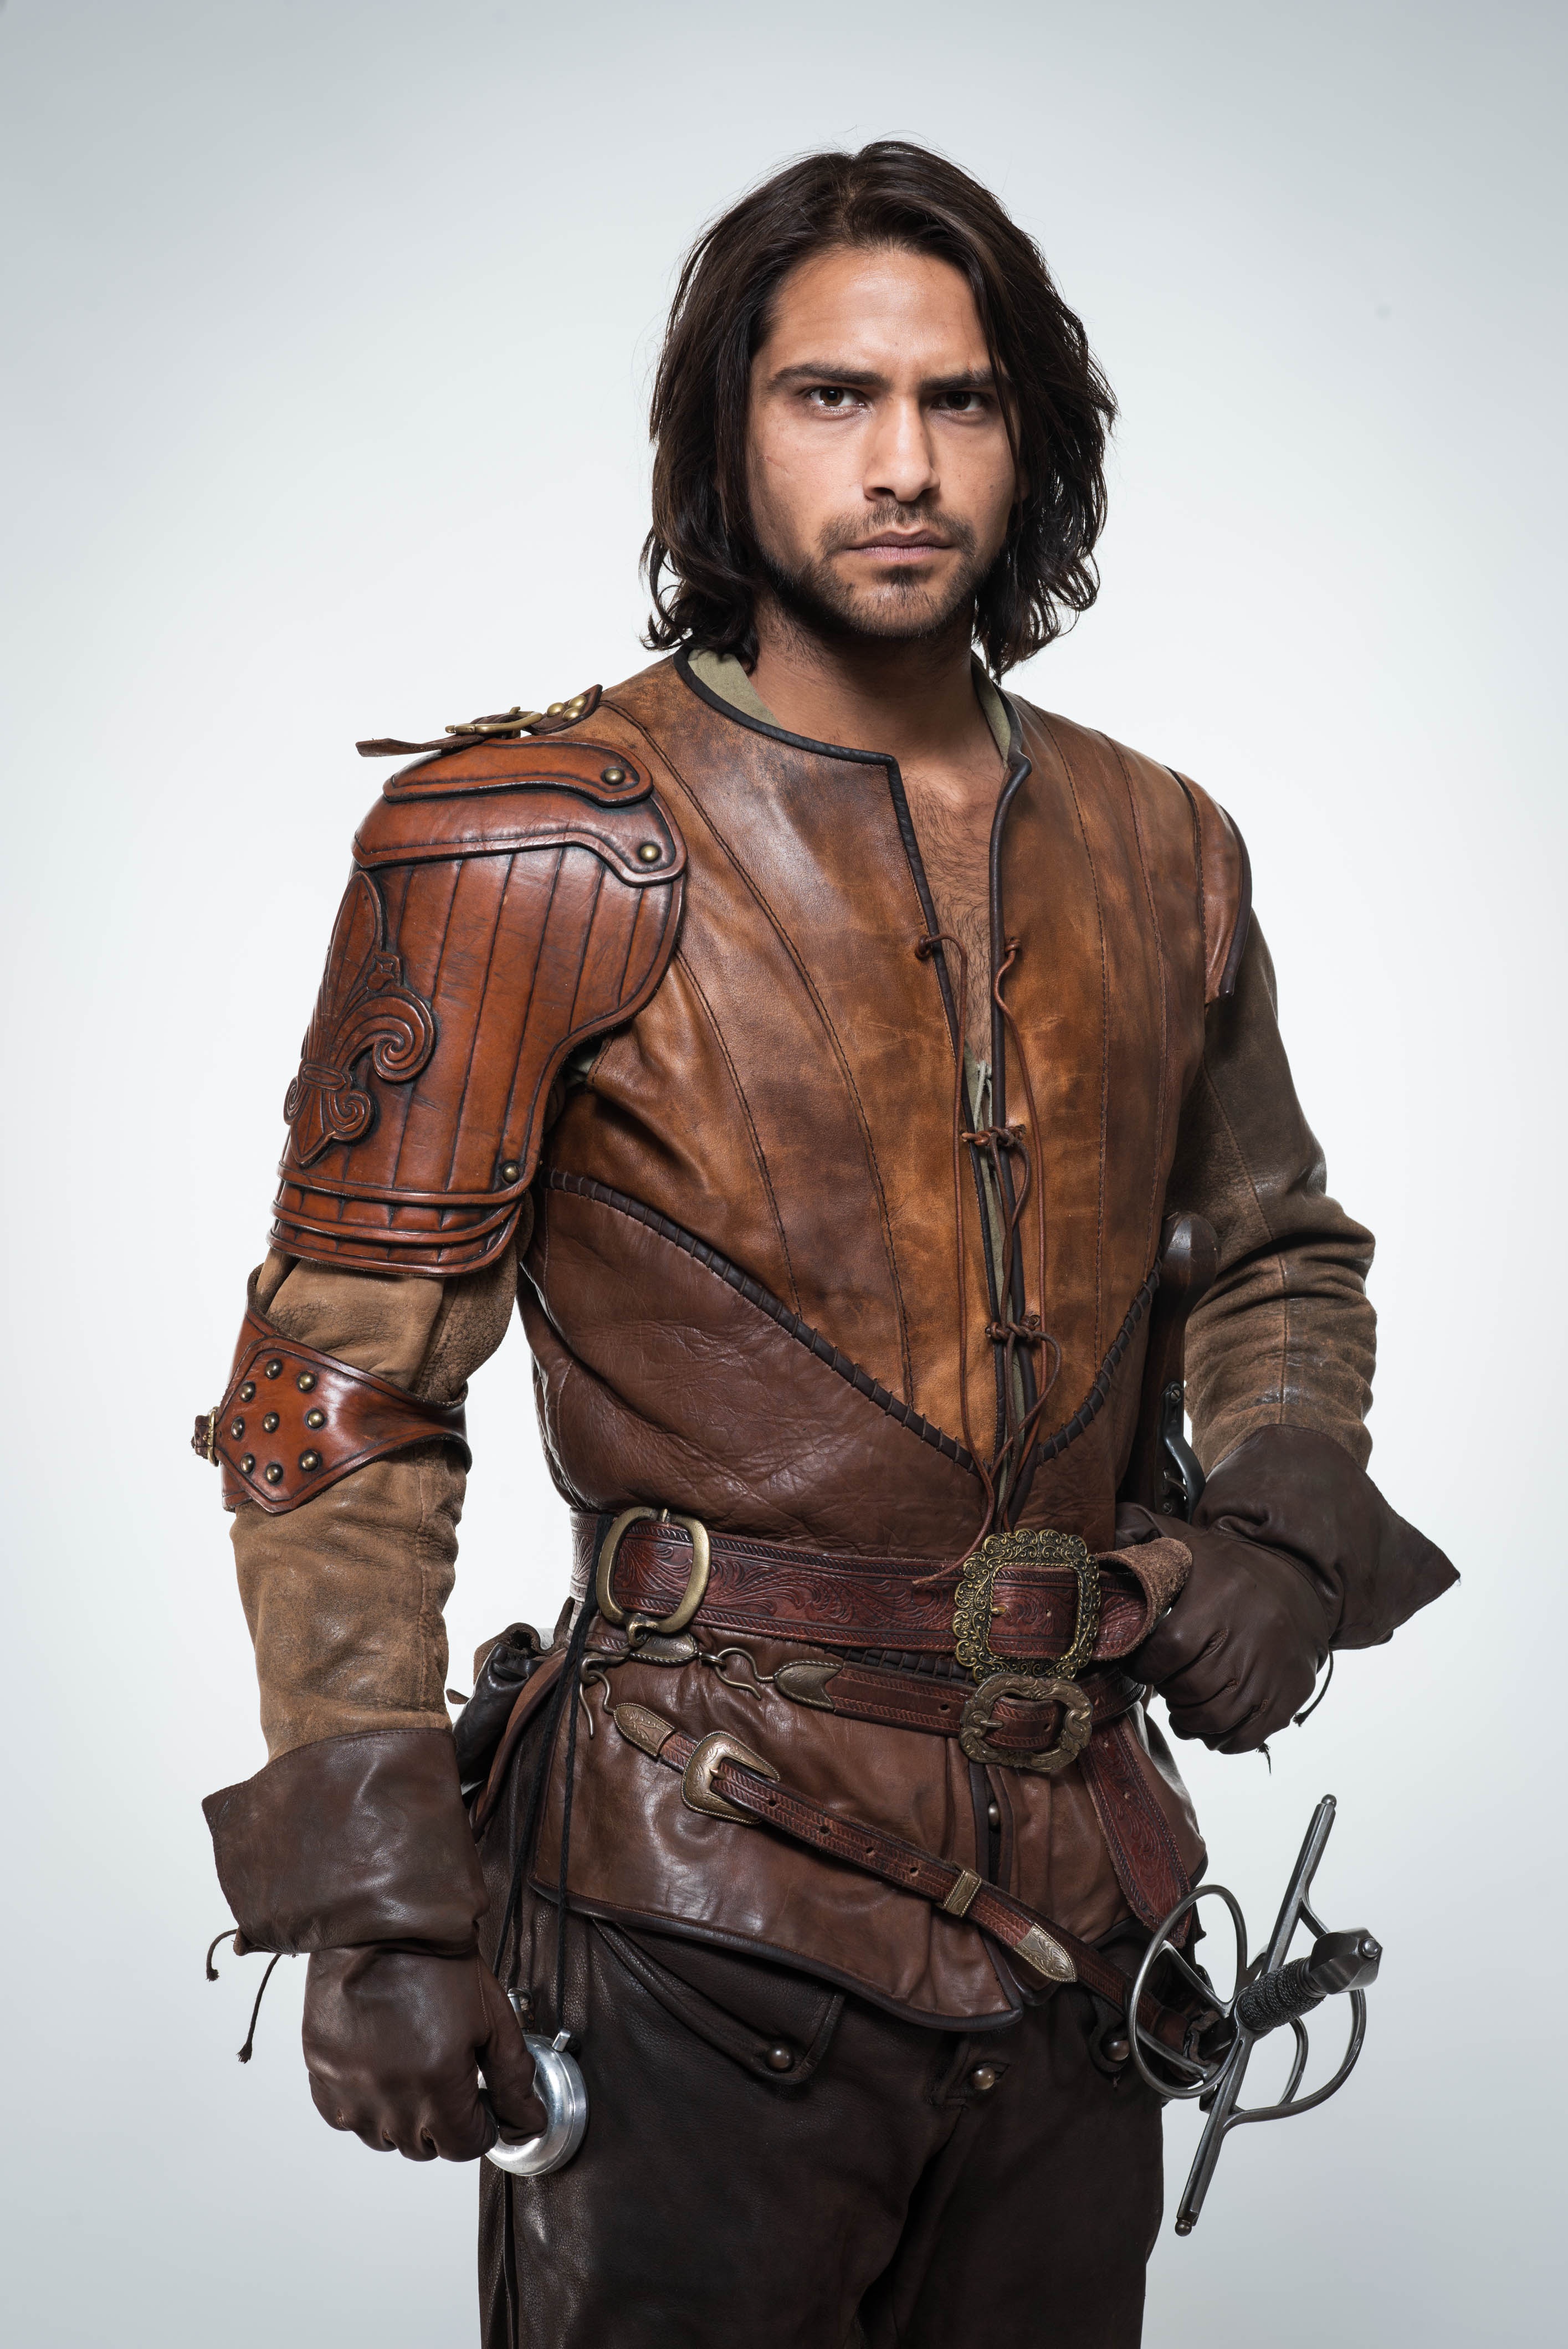 The Musketeers - Season 2 - Cast Photo - D'Artagnan